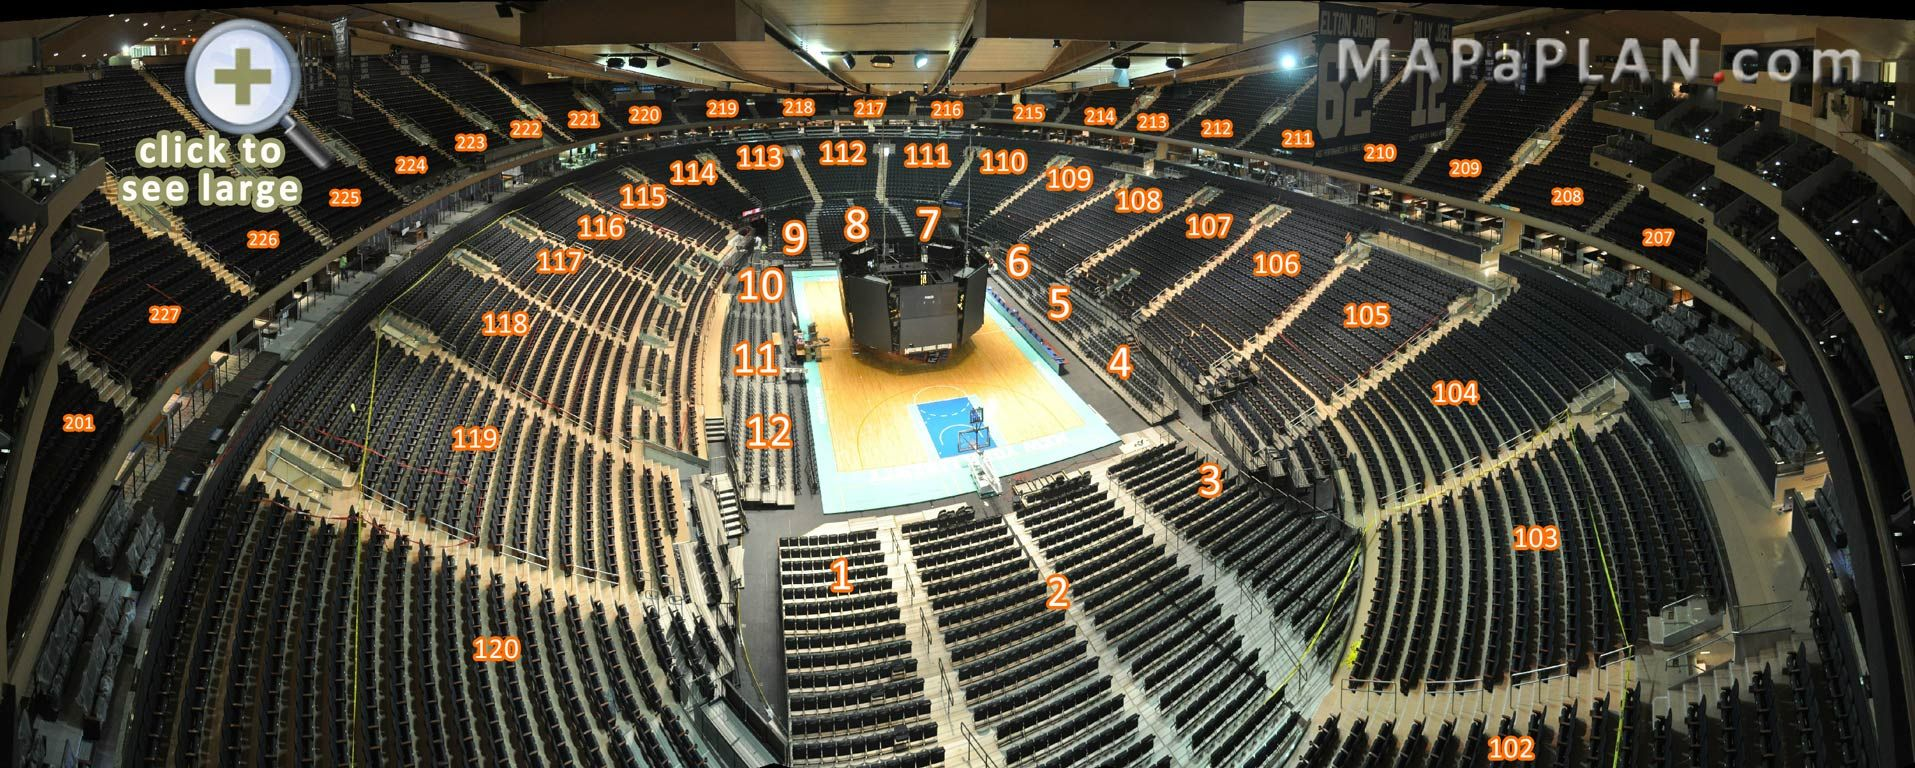 The Most Amazing As Well As Interesting Madison Square Garden 3d Seating Chart